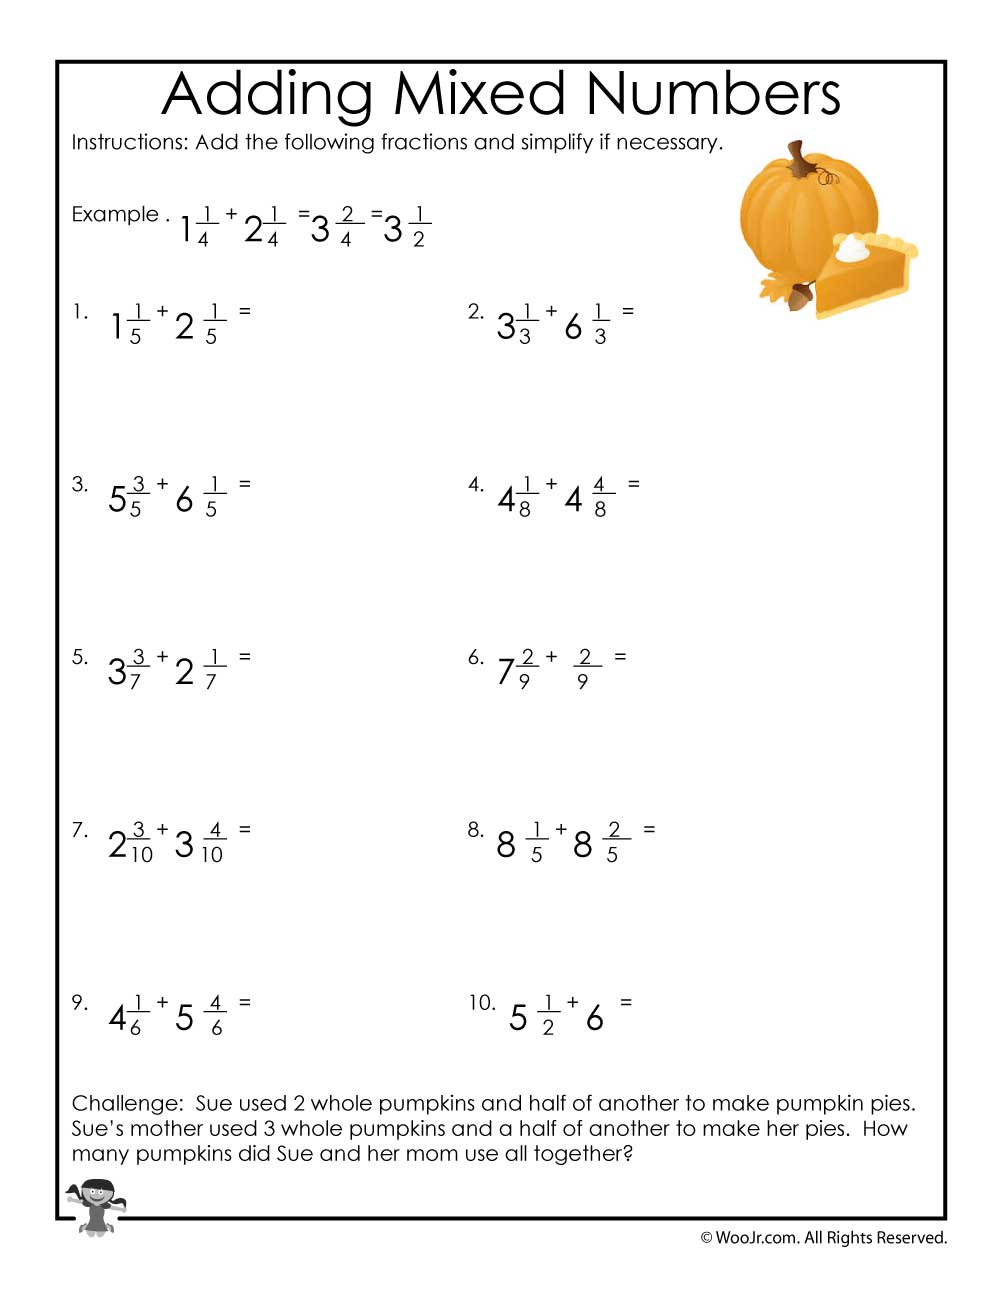 Adding Mixed Numbers Worksheet | Woo! Jr. Kids Activities